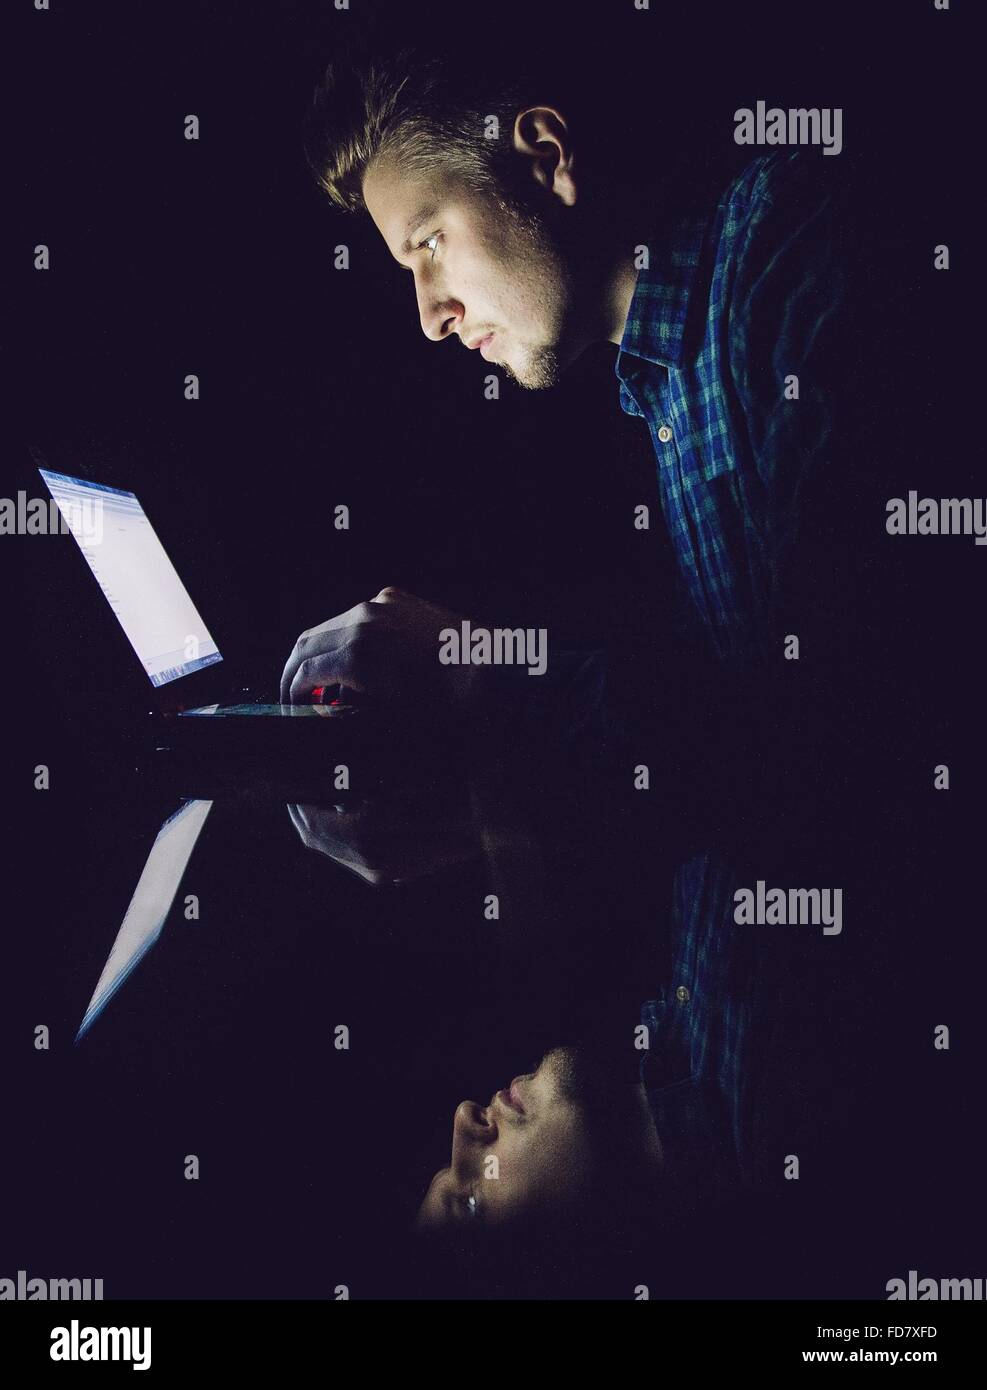 Reflection Of Young Man On Glass While Using Laptop In Darkroom - Stock Image